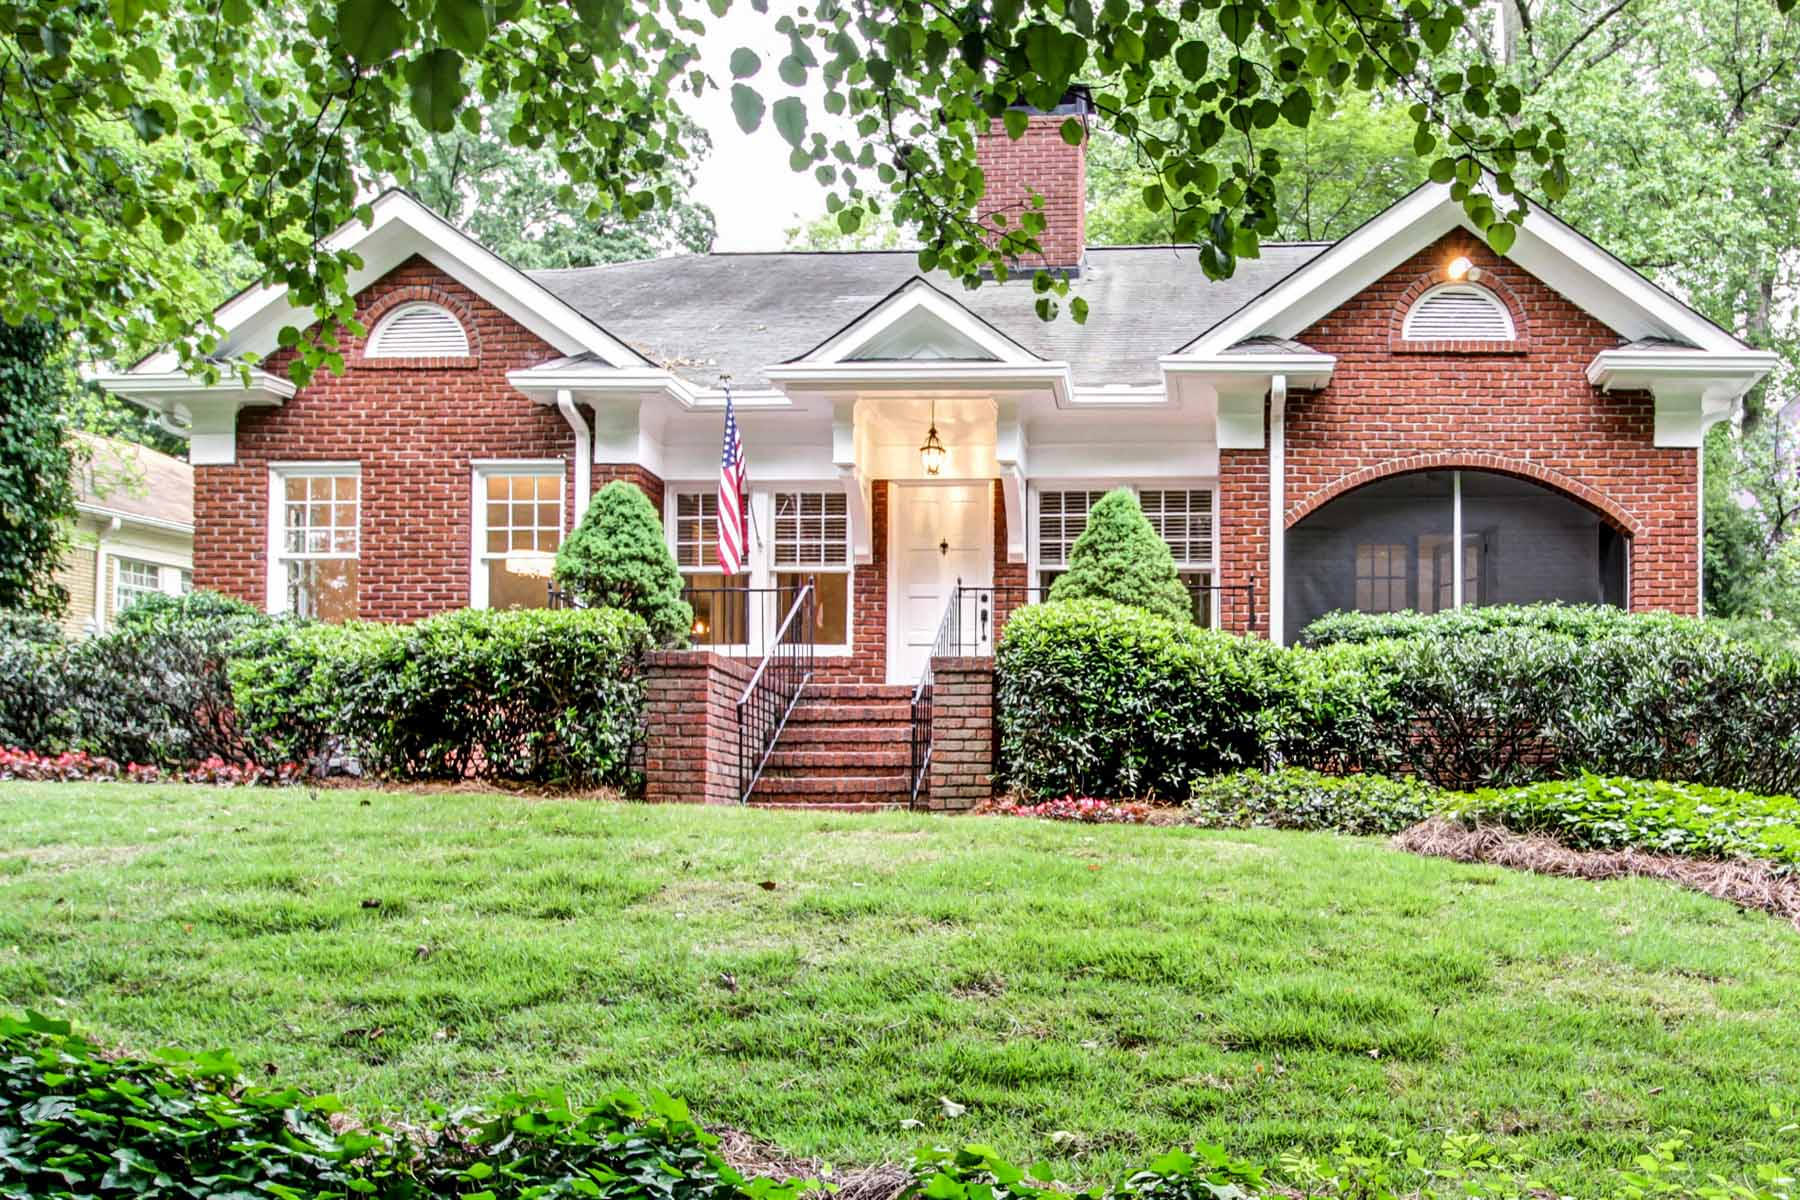 獨棟家庭住宅 為 出售 在 Updated and Expanded 1929 Traditional with Classic Architecture 1507 Emory Road Druid Hills, Atlanta, 喬治亞州, 30306 美國